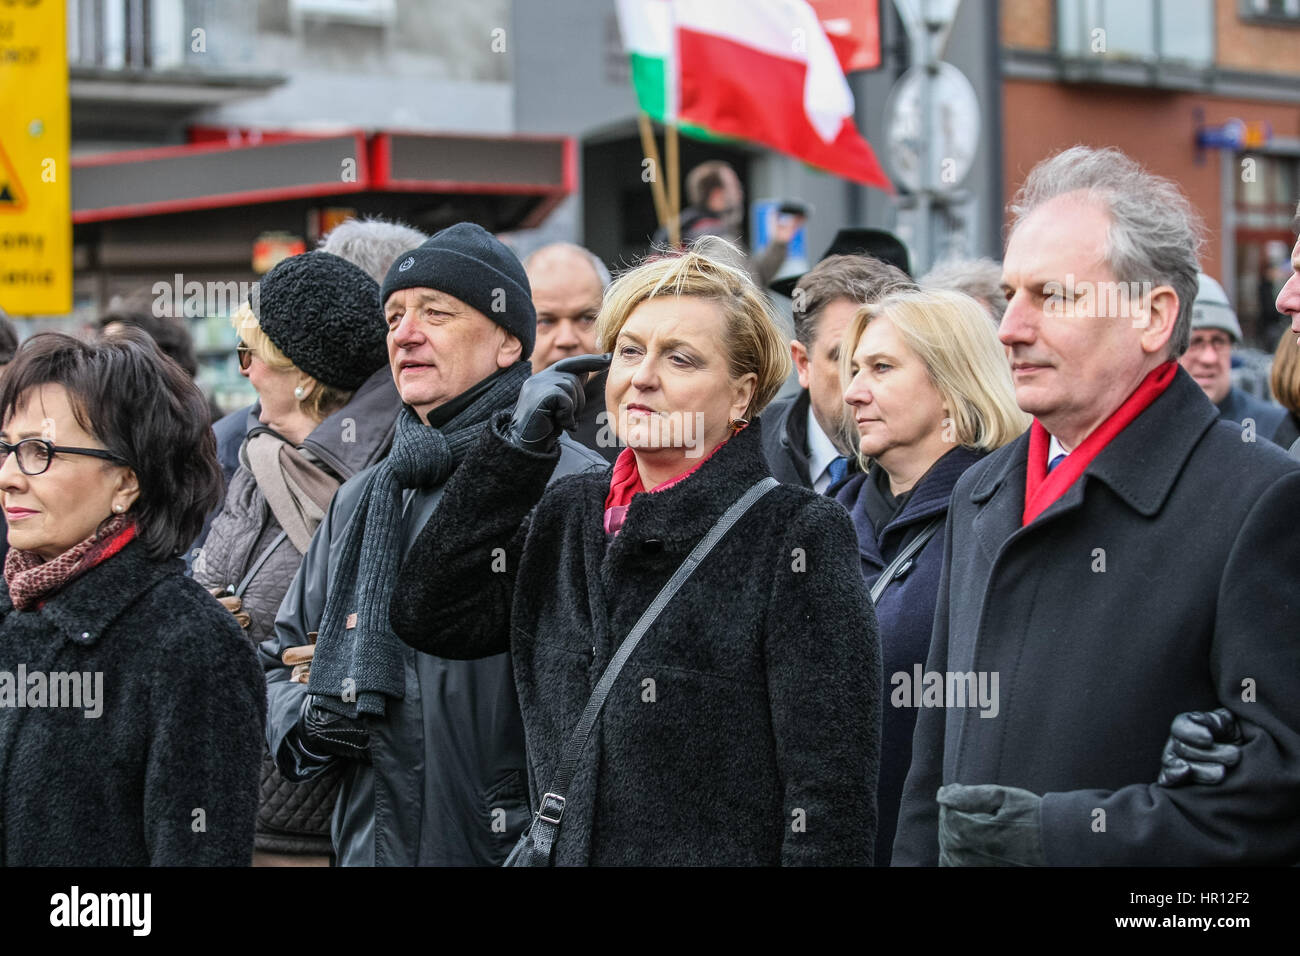 Gdansk, Poland. 26th February 2017. Anna Fotyga is seen during the Cursed soldiers Day parade on 26 February 2017 Stock Photo